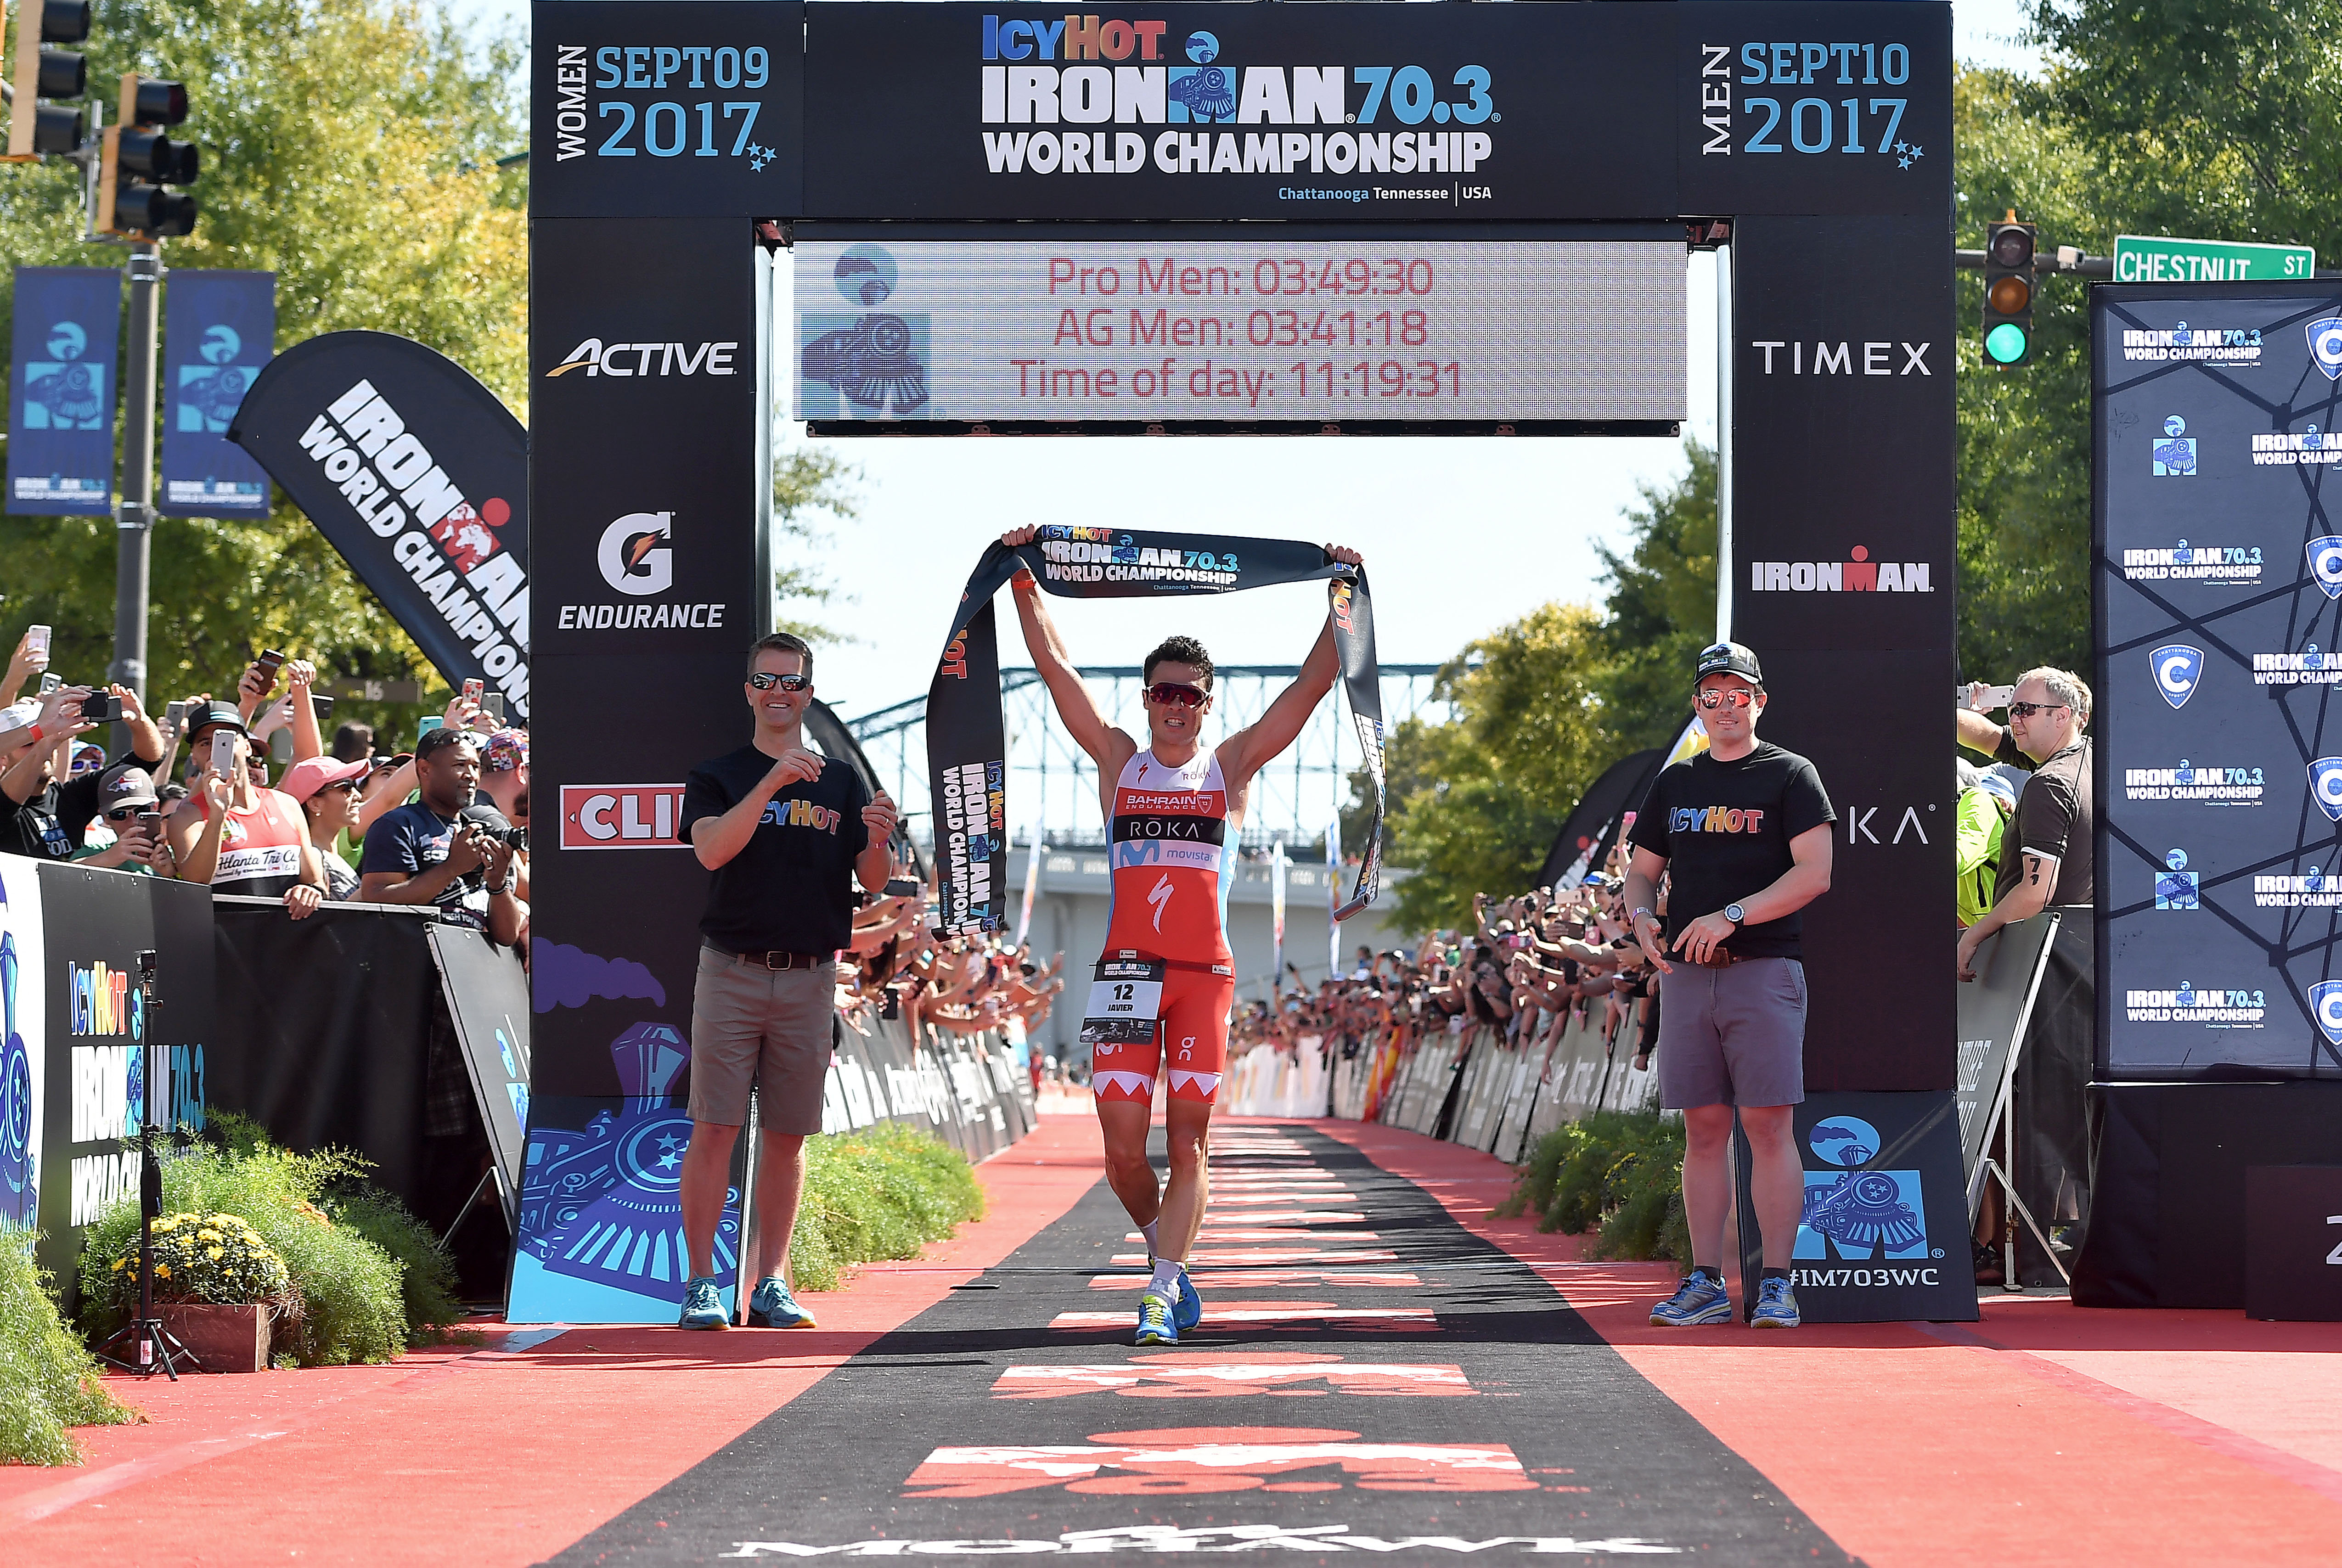 CHATTANOOGA, TN - SEPTEMBER 10:   Javier Gomez of Spain crosses the finish line for a 1st place finish during the the Men's IRONMAN 70.3 St. World Championships on September 10, 2017 in Chattanooga, Tennessee. (Photo by Donald Miralle for Ironman)